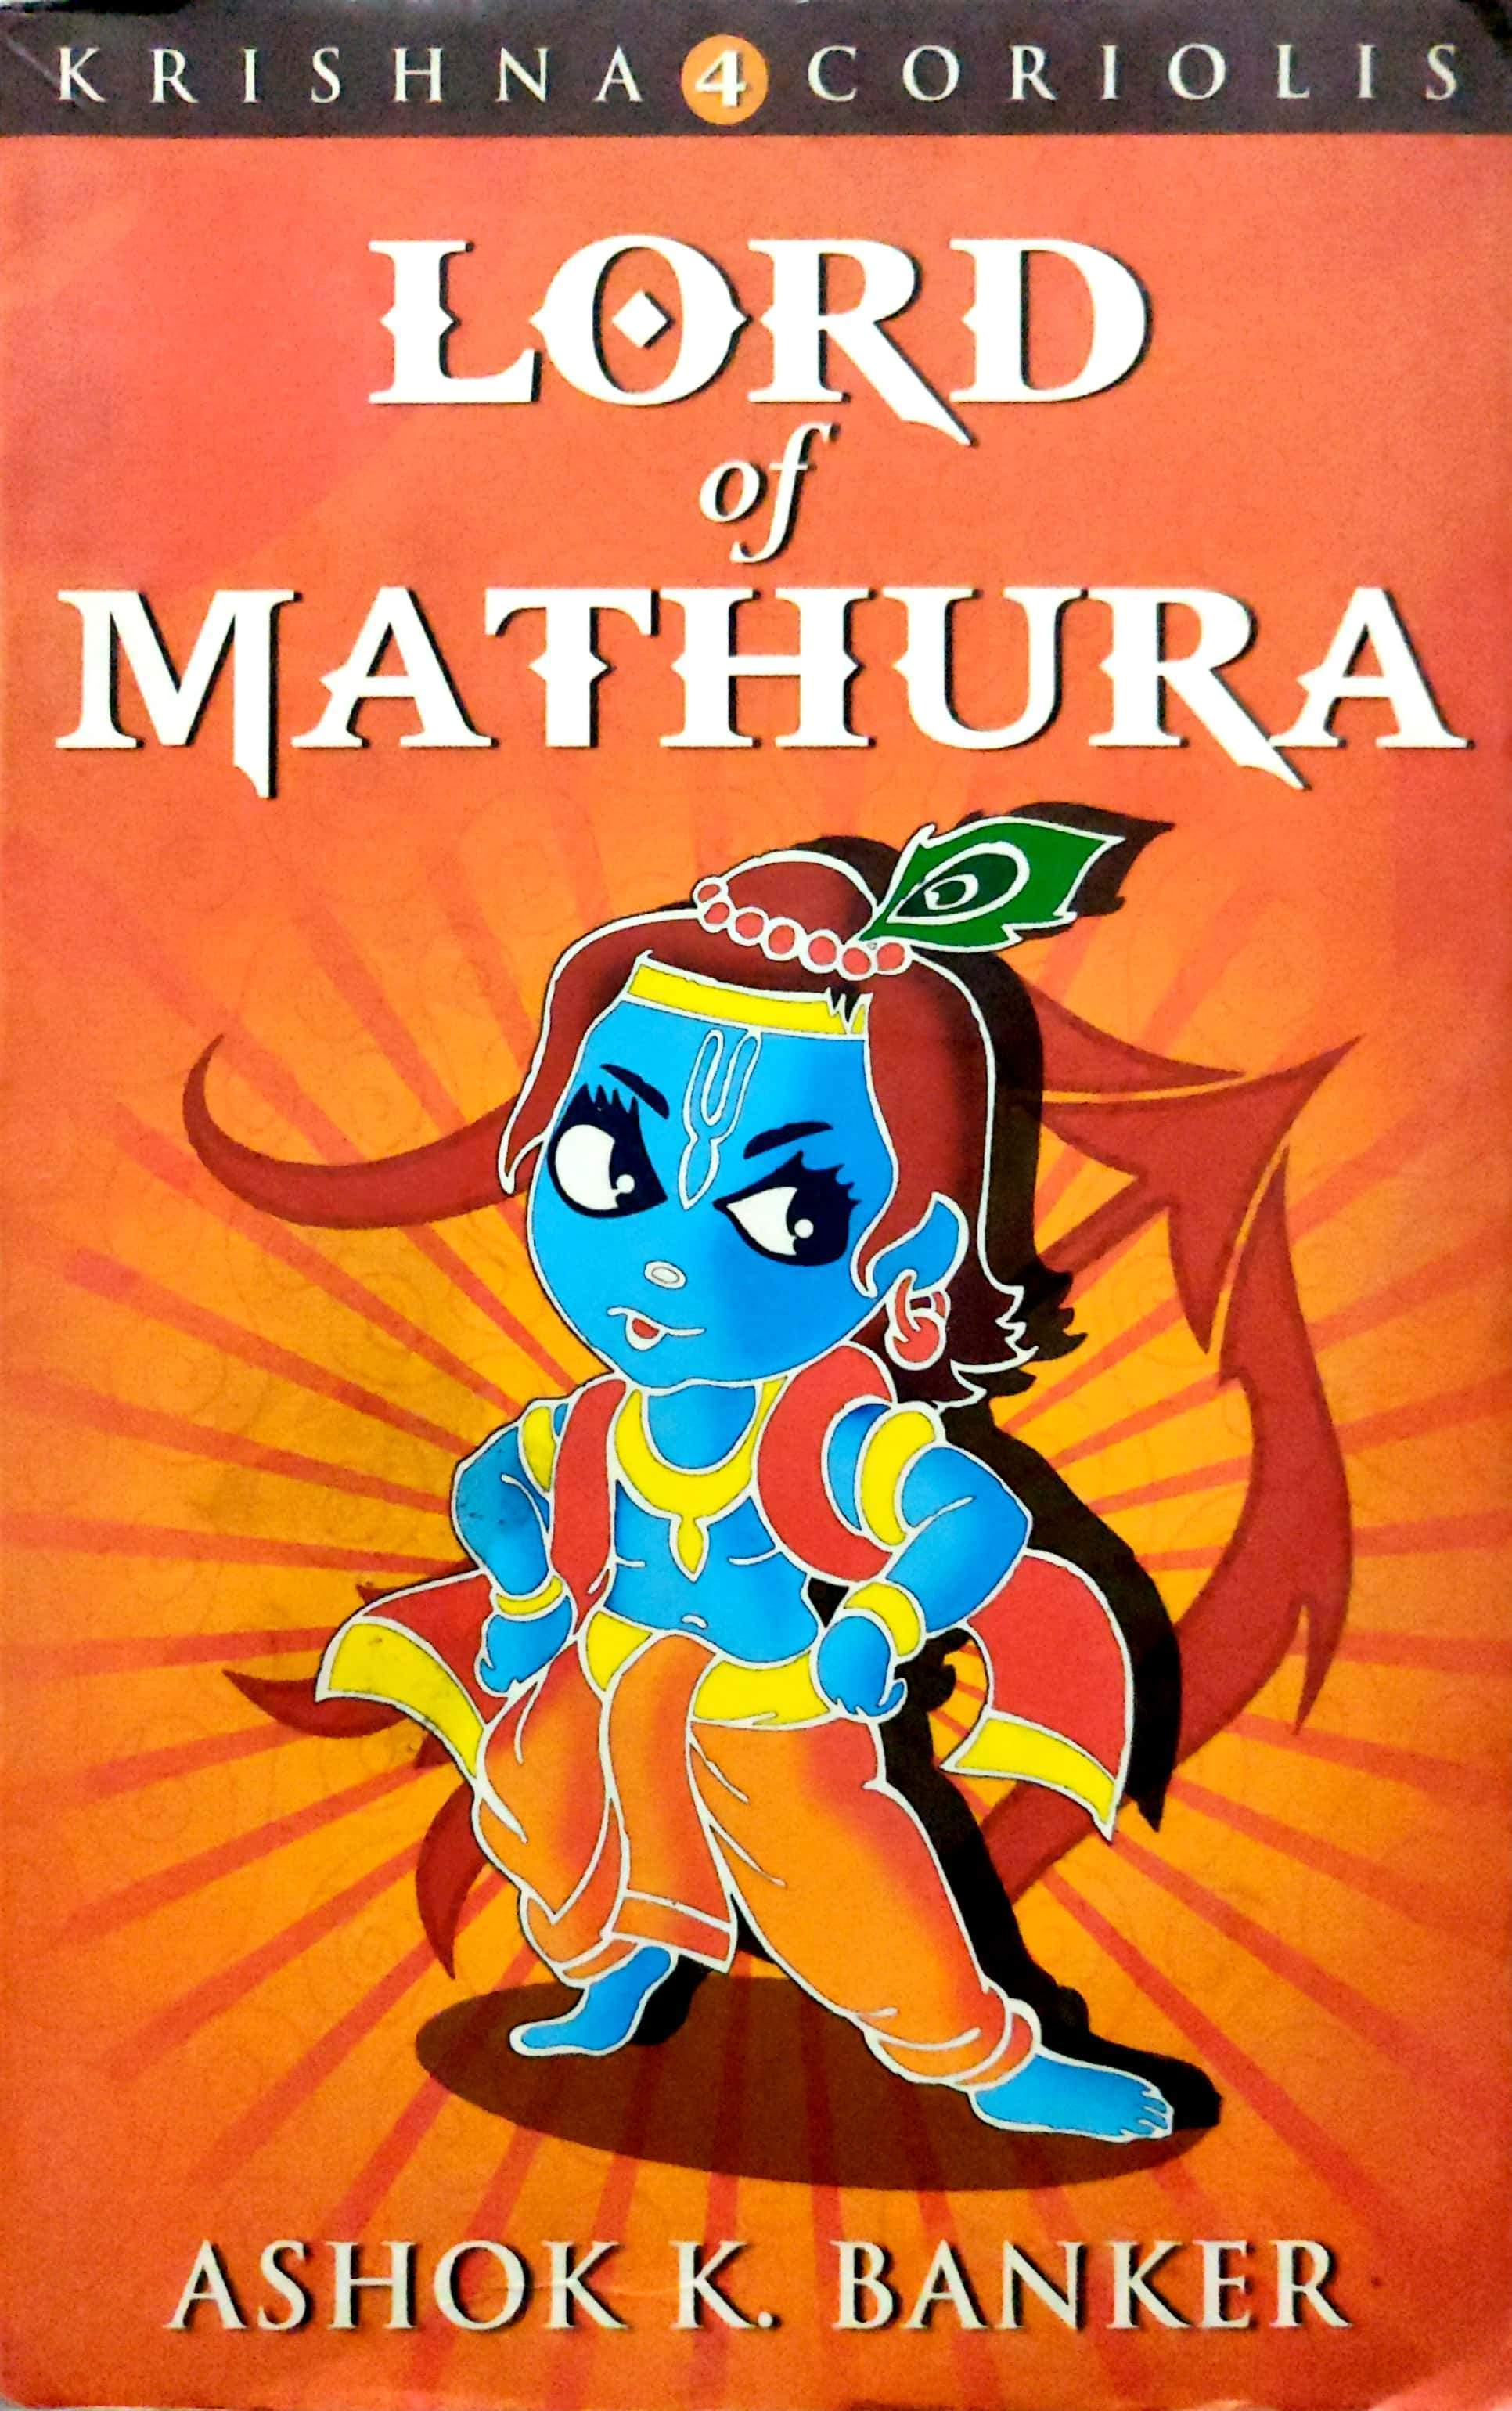 LORD OF MATHURA (Krishna Coriolis #4)